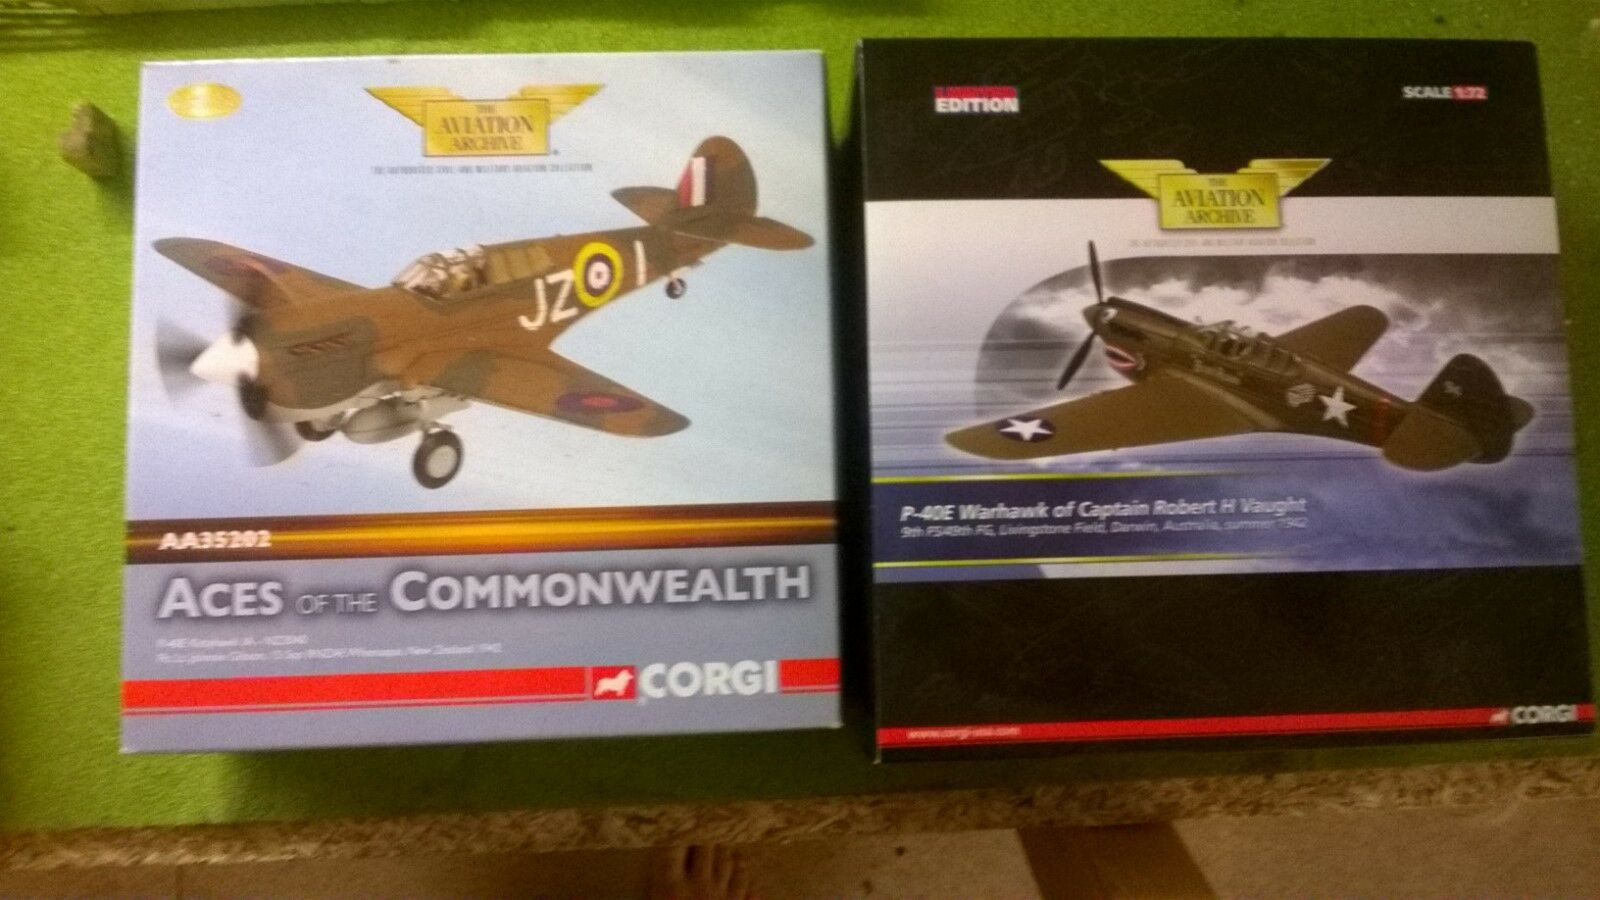 Corgi Die Cast Military Aircraft Models - P-40E Kittyhawk  WWII